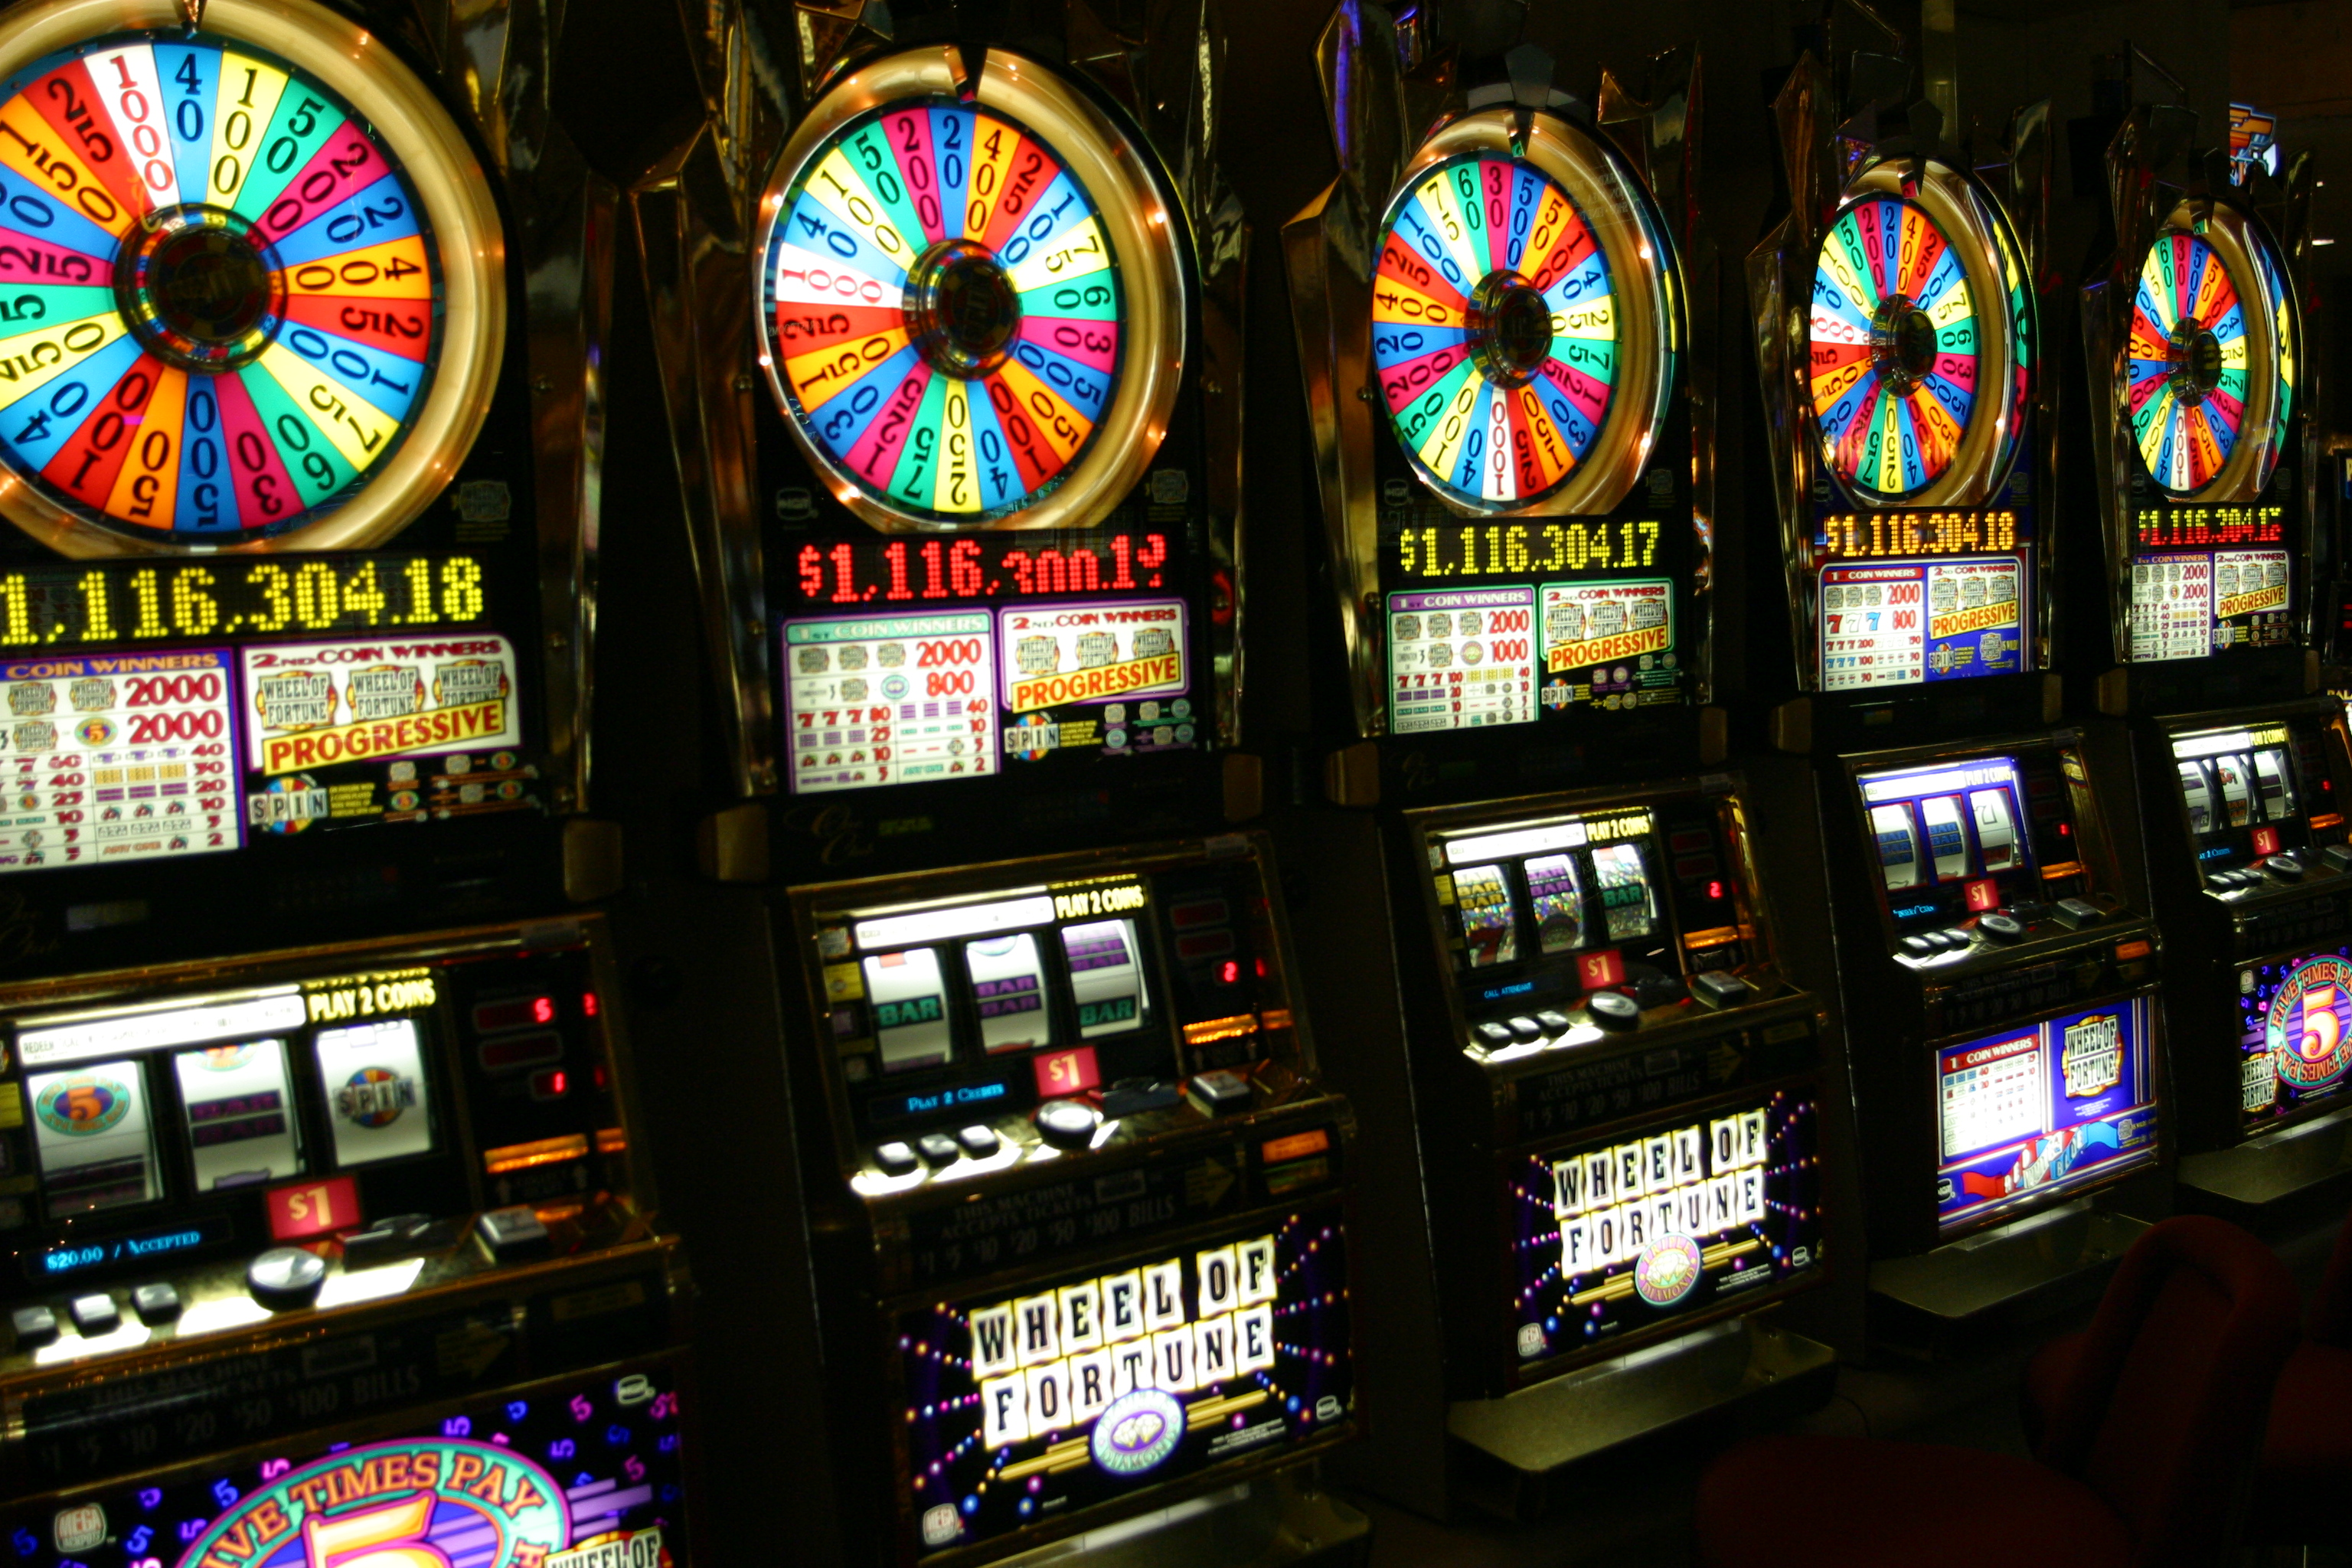 http://upload.wikimedia.org/wikipedia/commons/e/ec/Vegas_slots.JPG